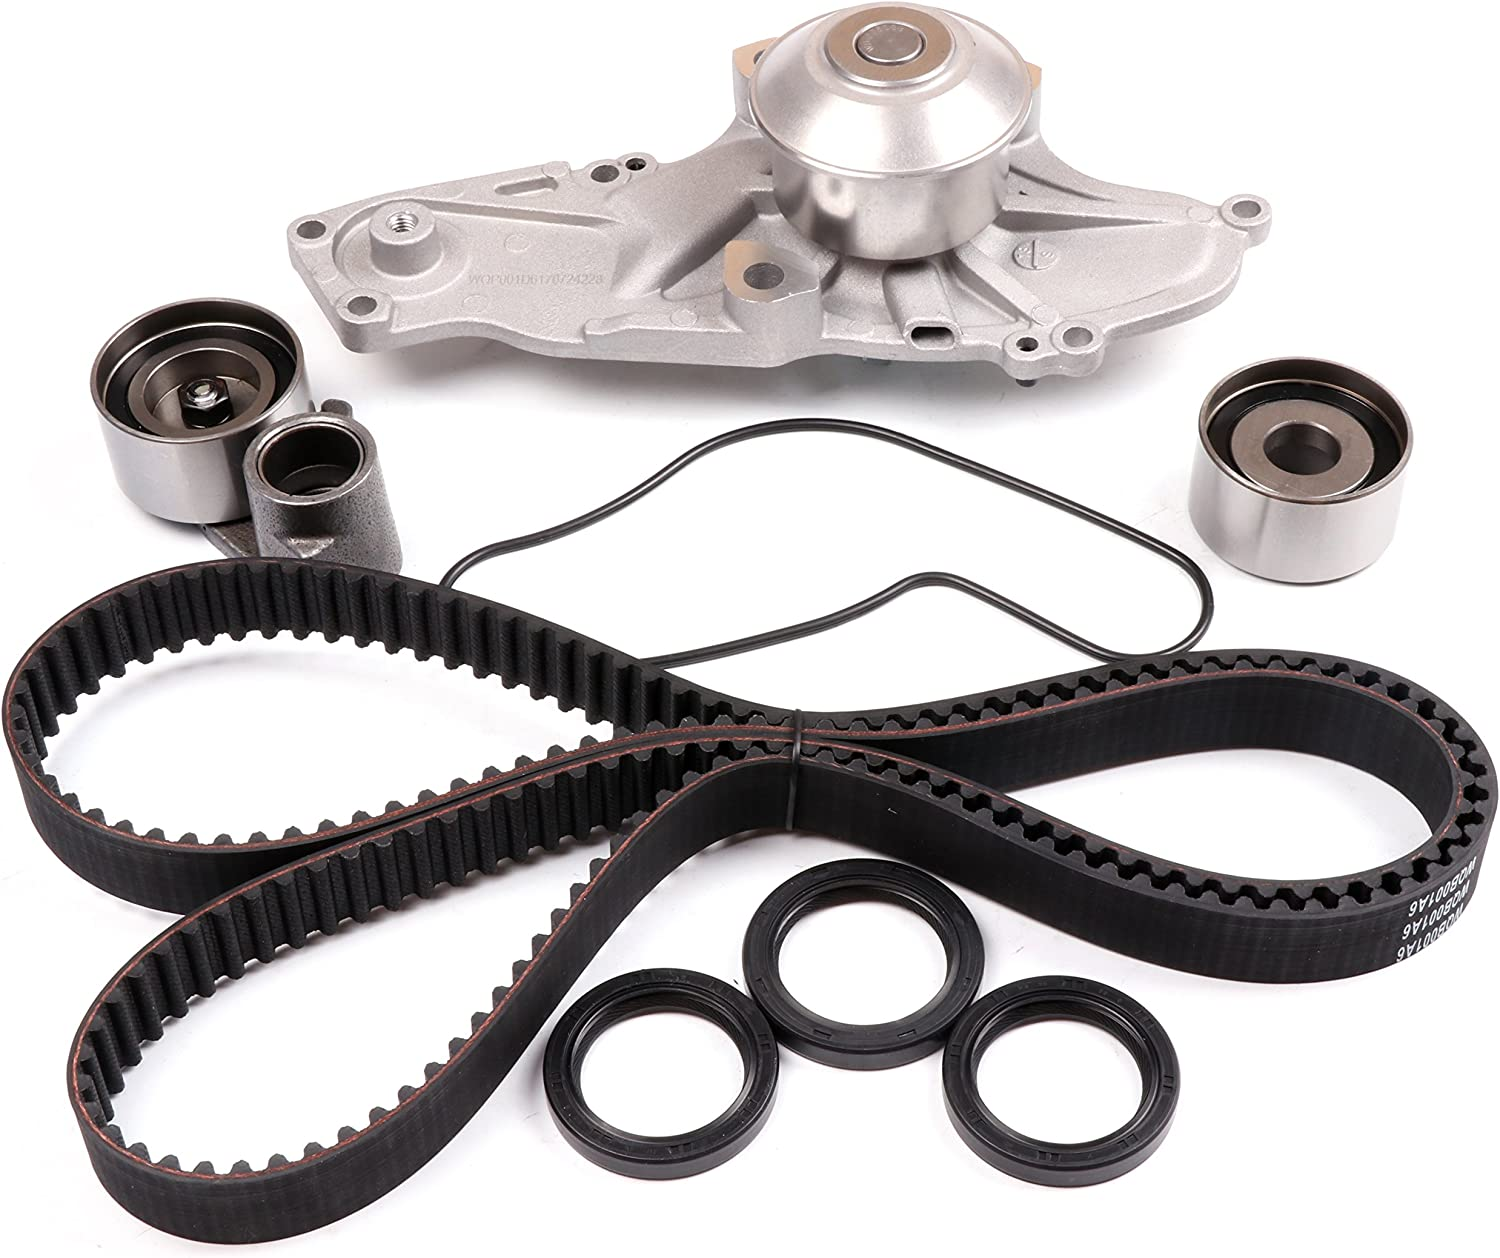 ANPART Timing Belt Kit Fit For 1997-1999 2001-2003 Acura CL 2001-2002 Acura MDX 1999-2003 Acura TL 1998-2002 Honda Accord 1999-2004 Honda Odyssey Timing Belt Water Pump Tensioner Gasket Set